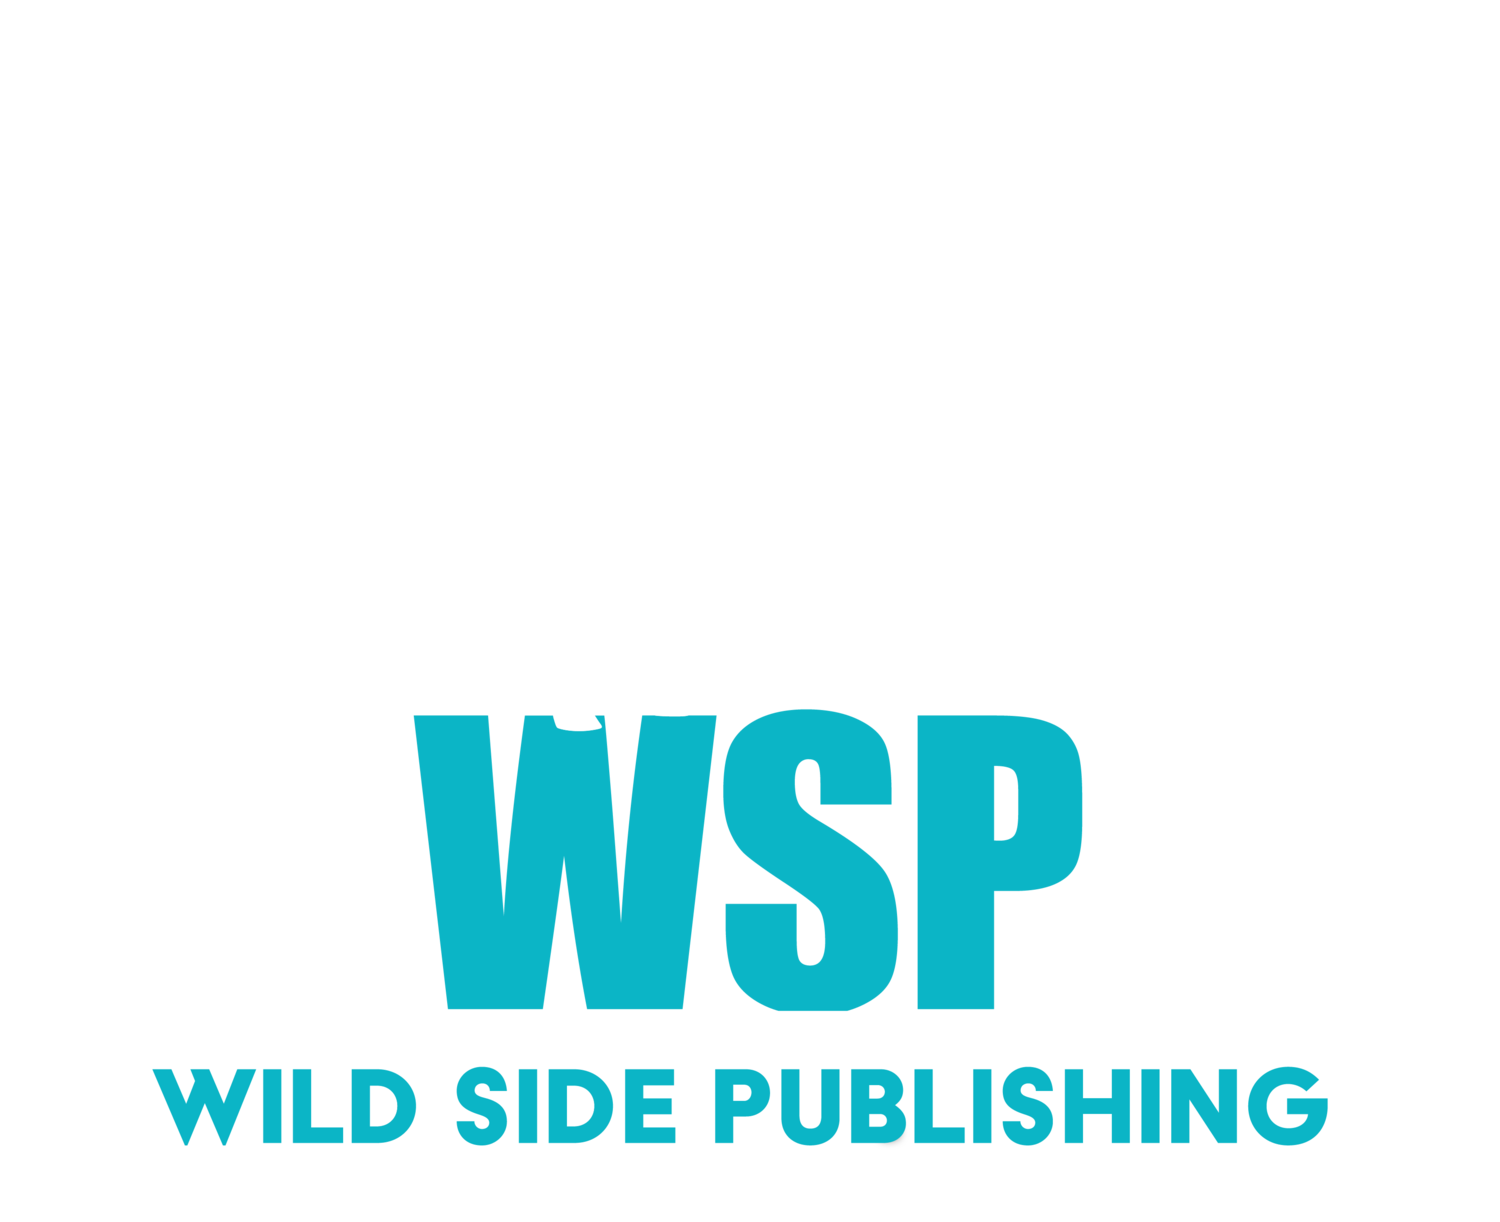 Wild Side Publishing